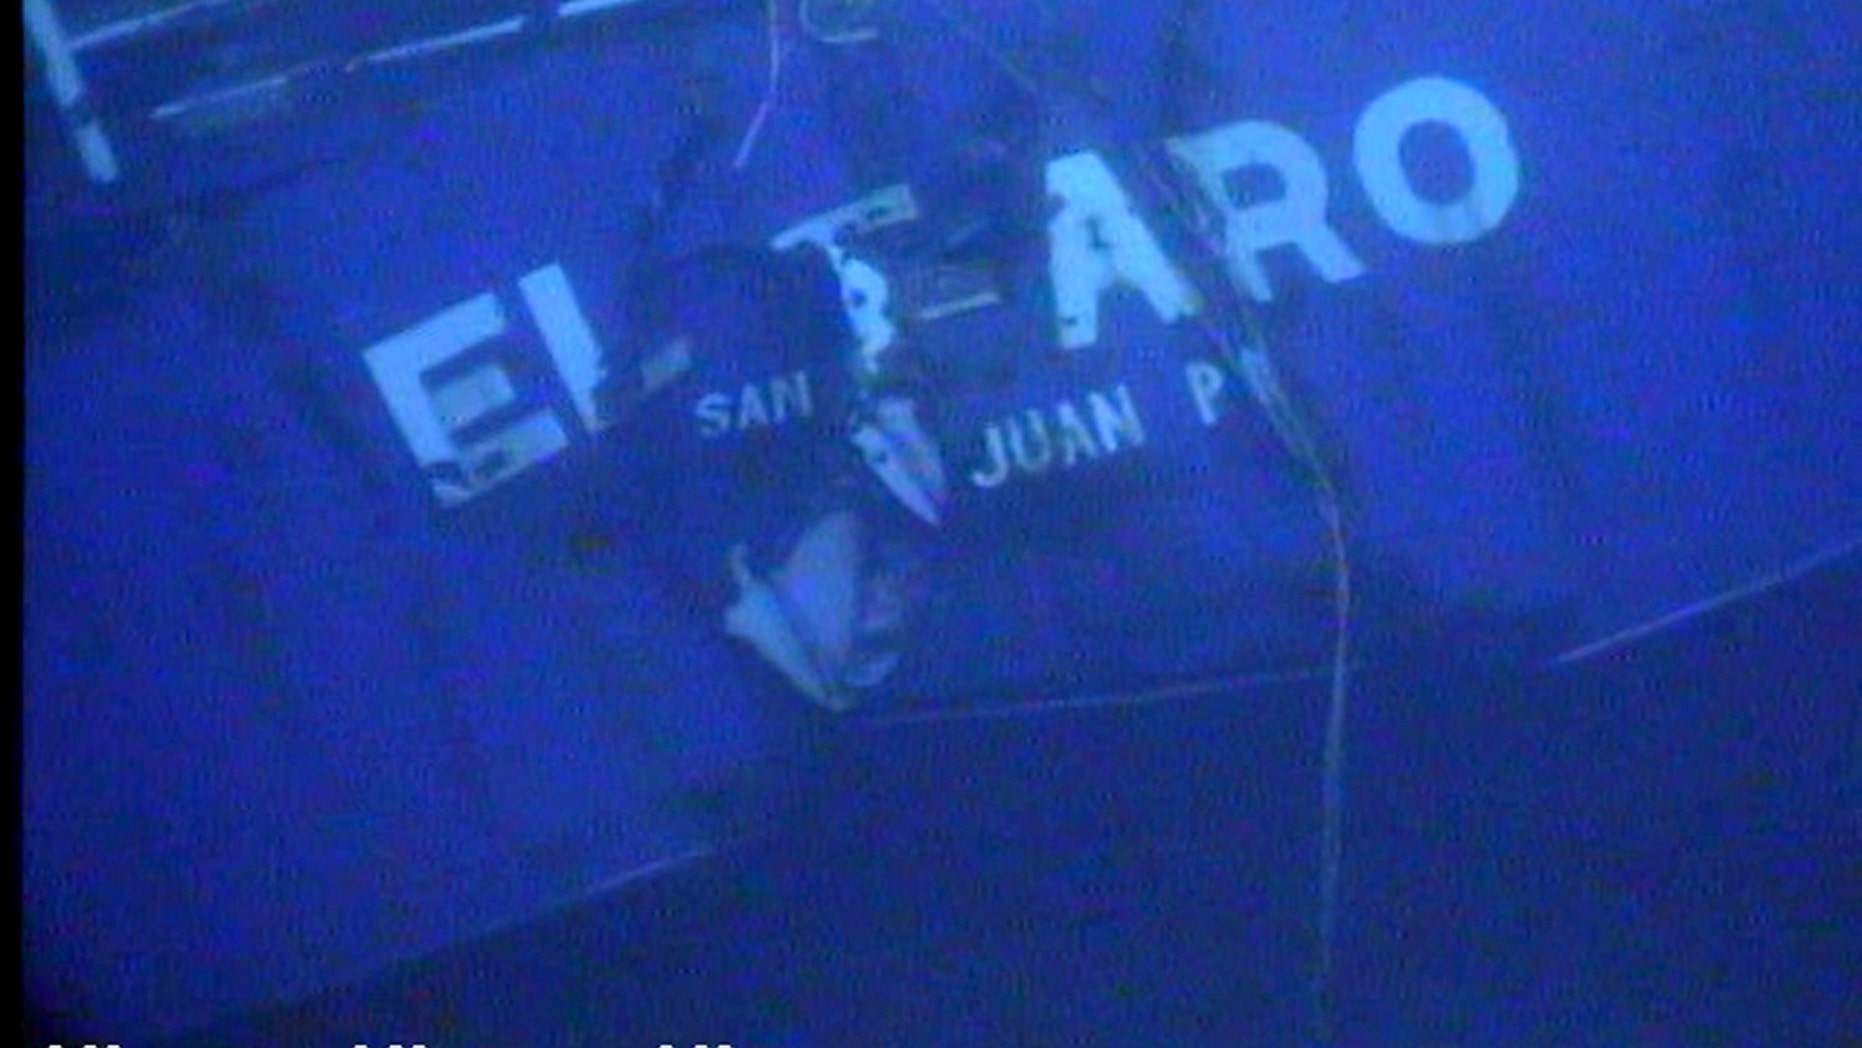 The stern of the El Faro is shown on the ocean floor taken from an underwater video camera on November 1, 2015. (Courtesy National Transportation Safety Board/Handout)